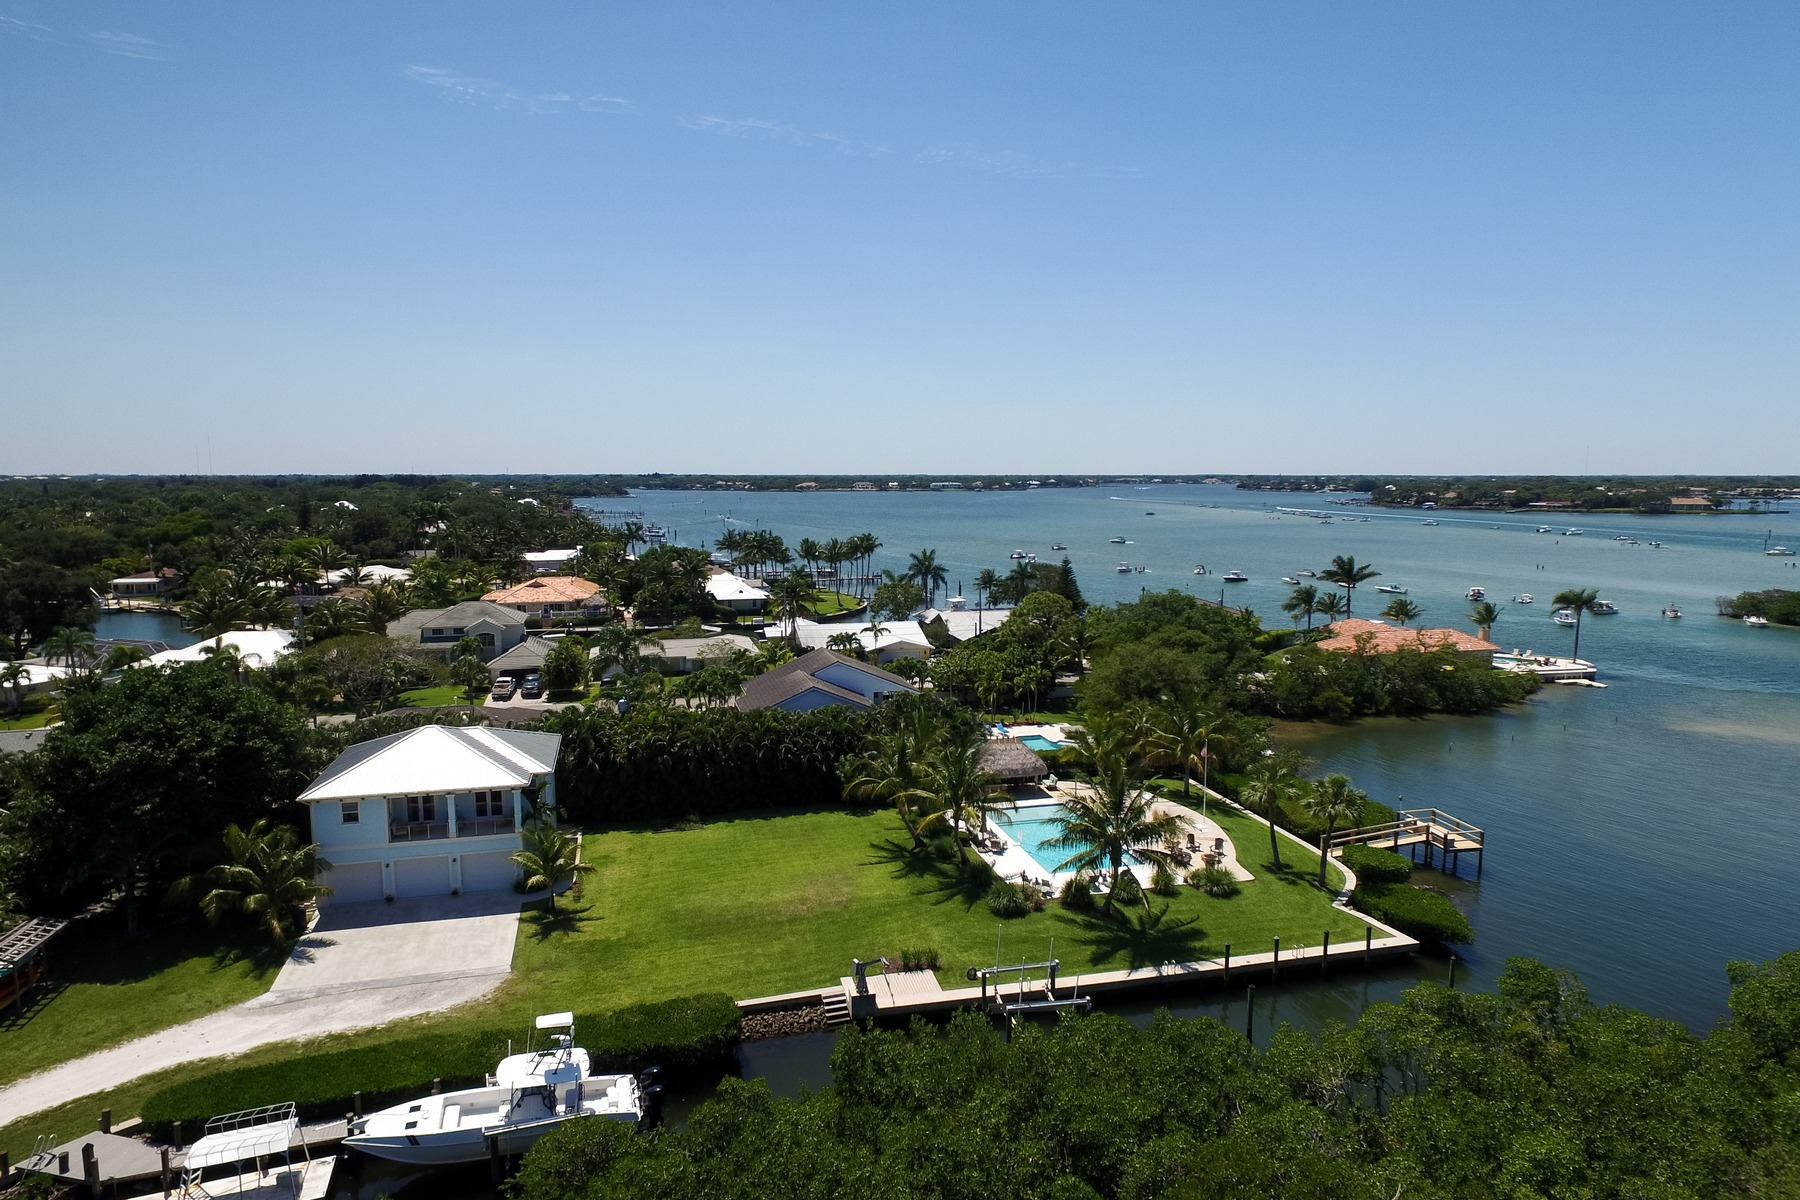 Single Family Home for Sale at 207 Killane Drive Jupiter, Florida, 33458 United States